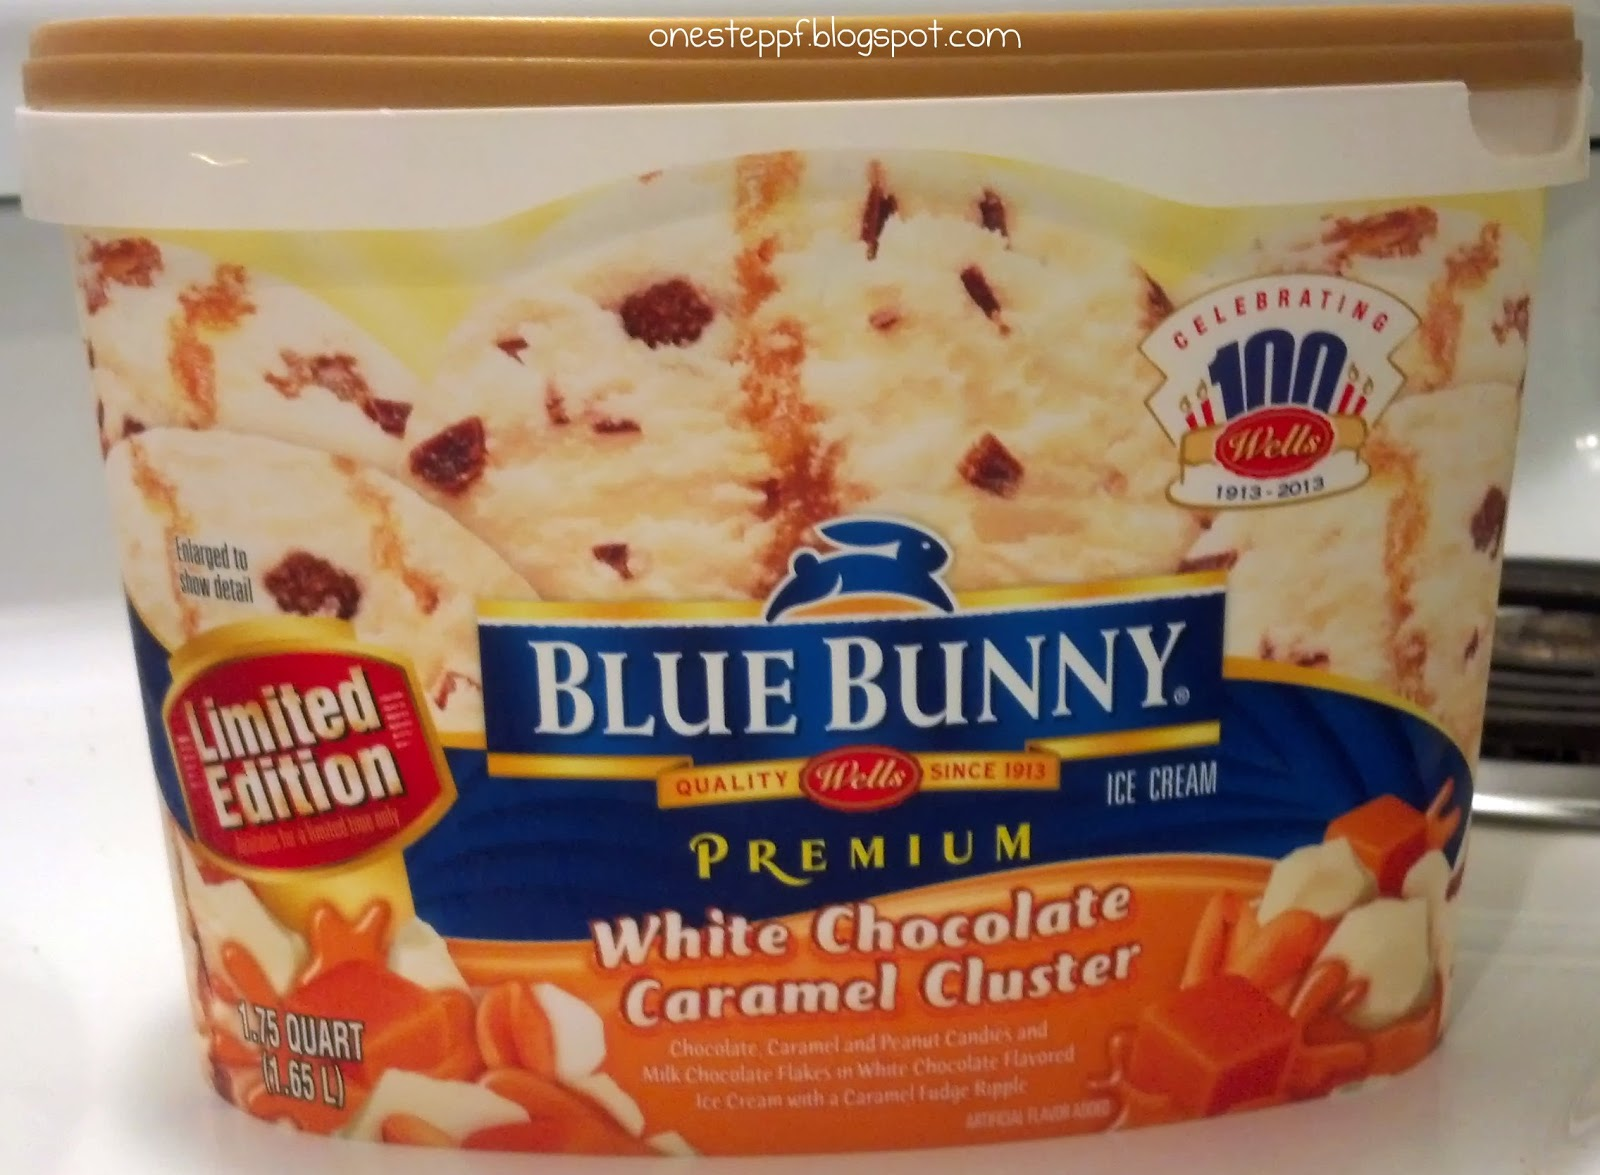 ... Time: Blue Bunny White Chocolate Caramel Cluster (An Ice Cream Review